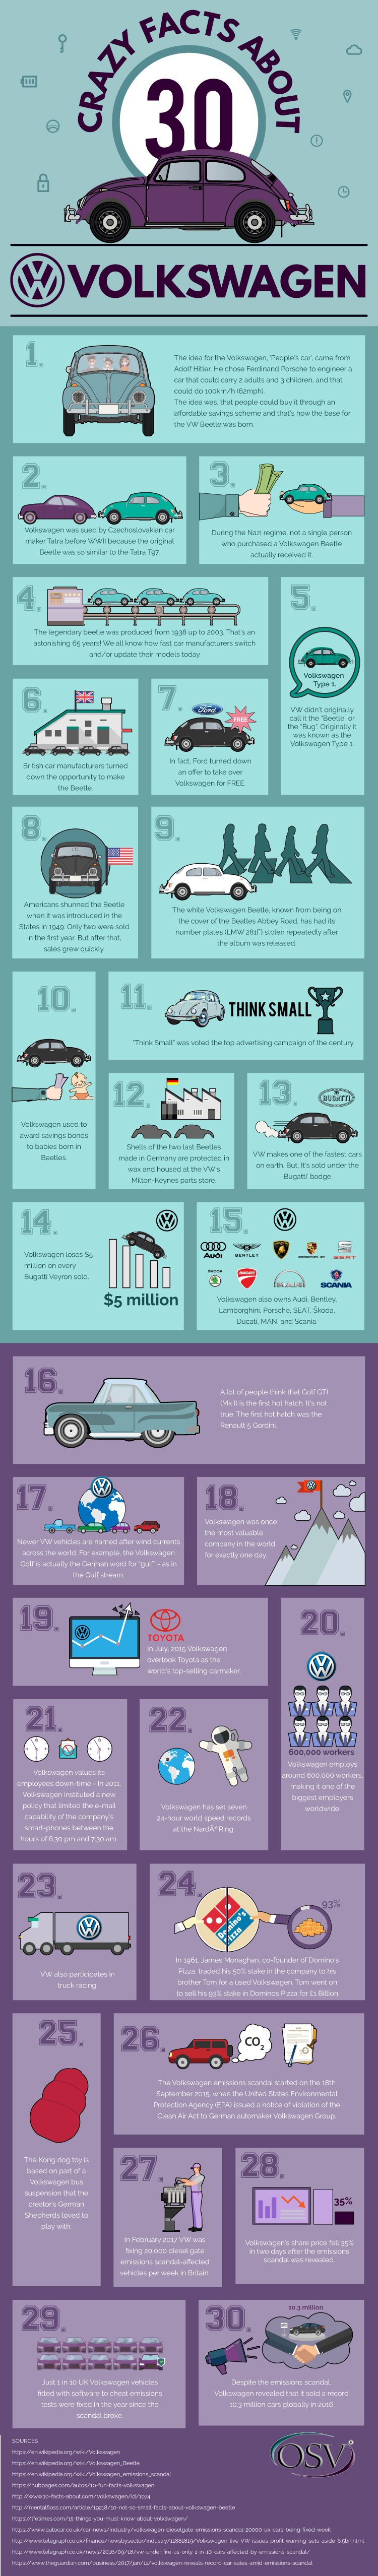 30 Crazy Facts About Volkswagen